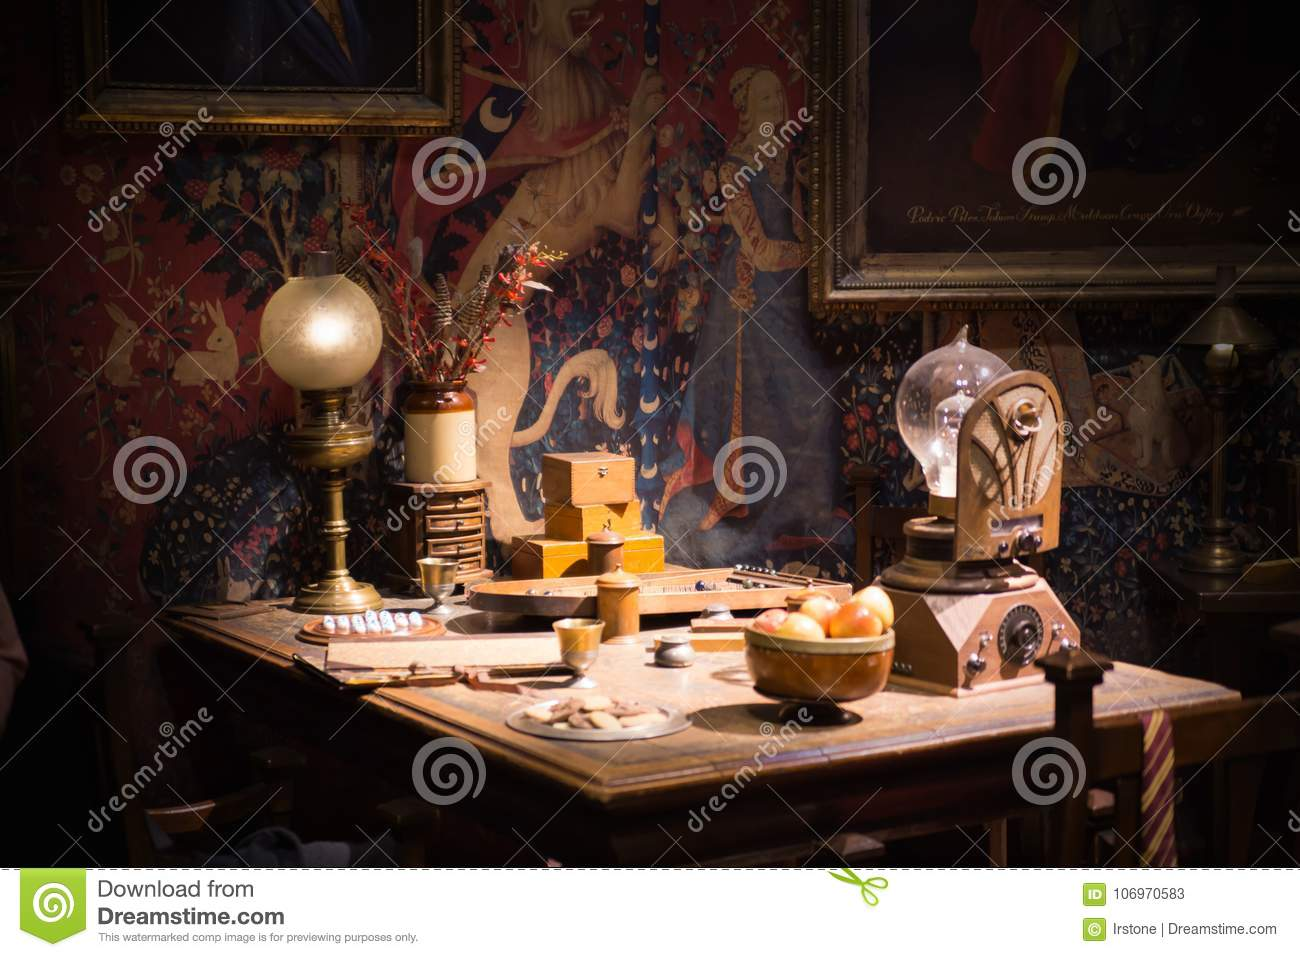 21 Harry Potter Bedroom Photos Free Royalty Free Stock Photos From Dreamstime